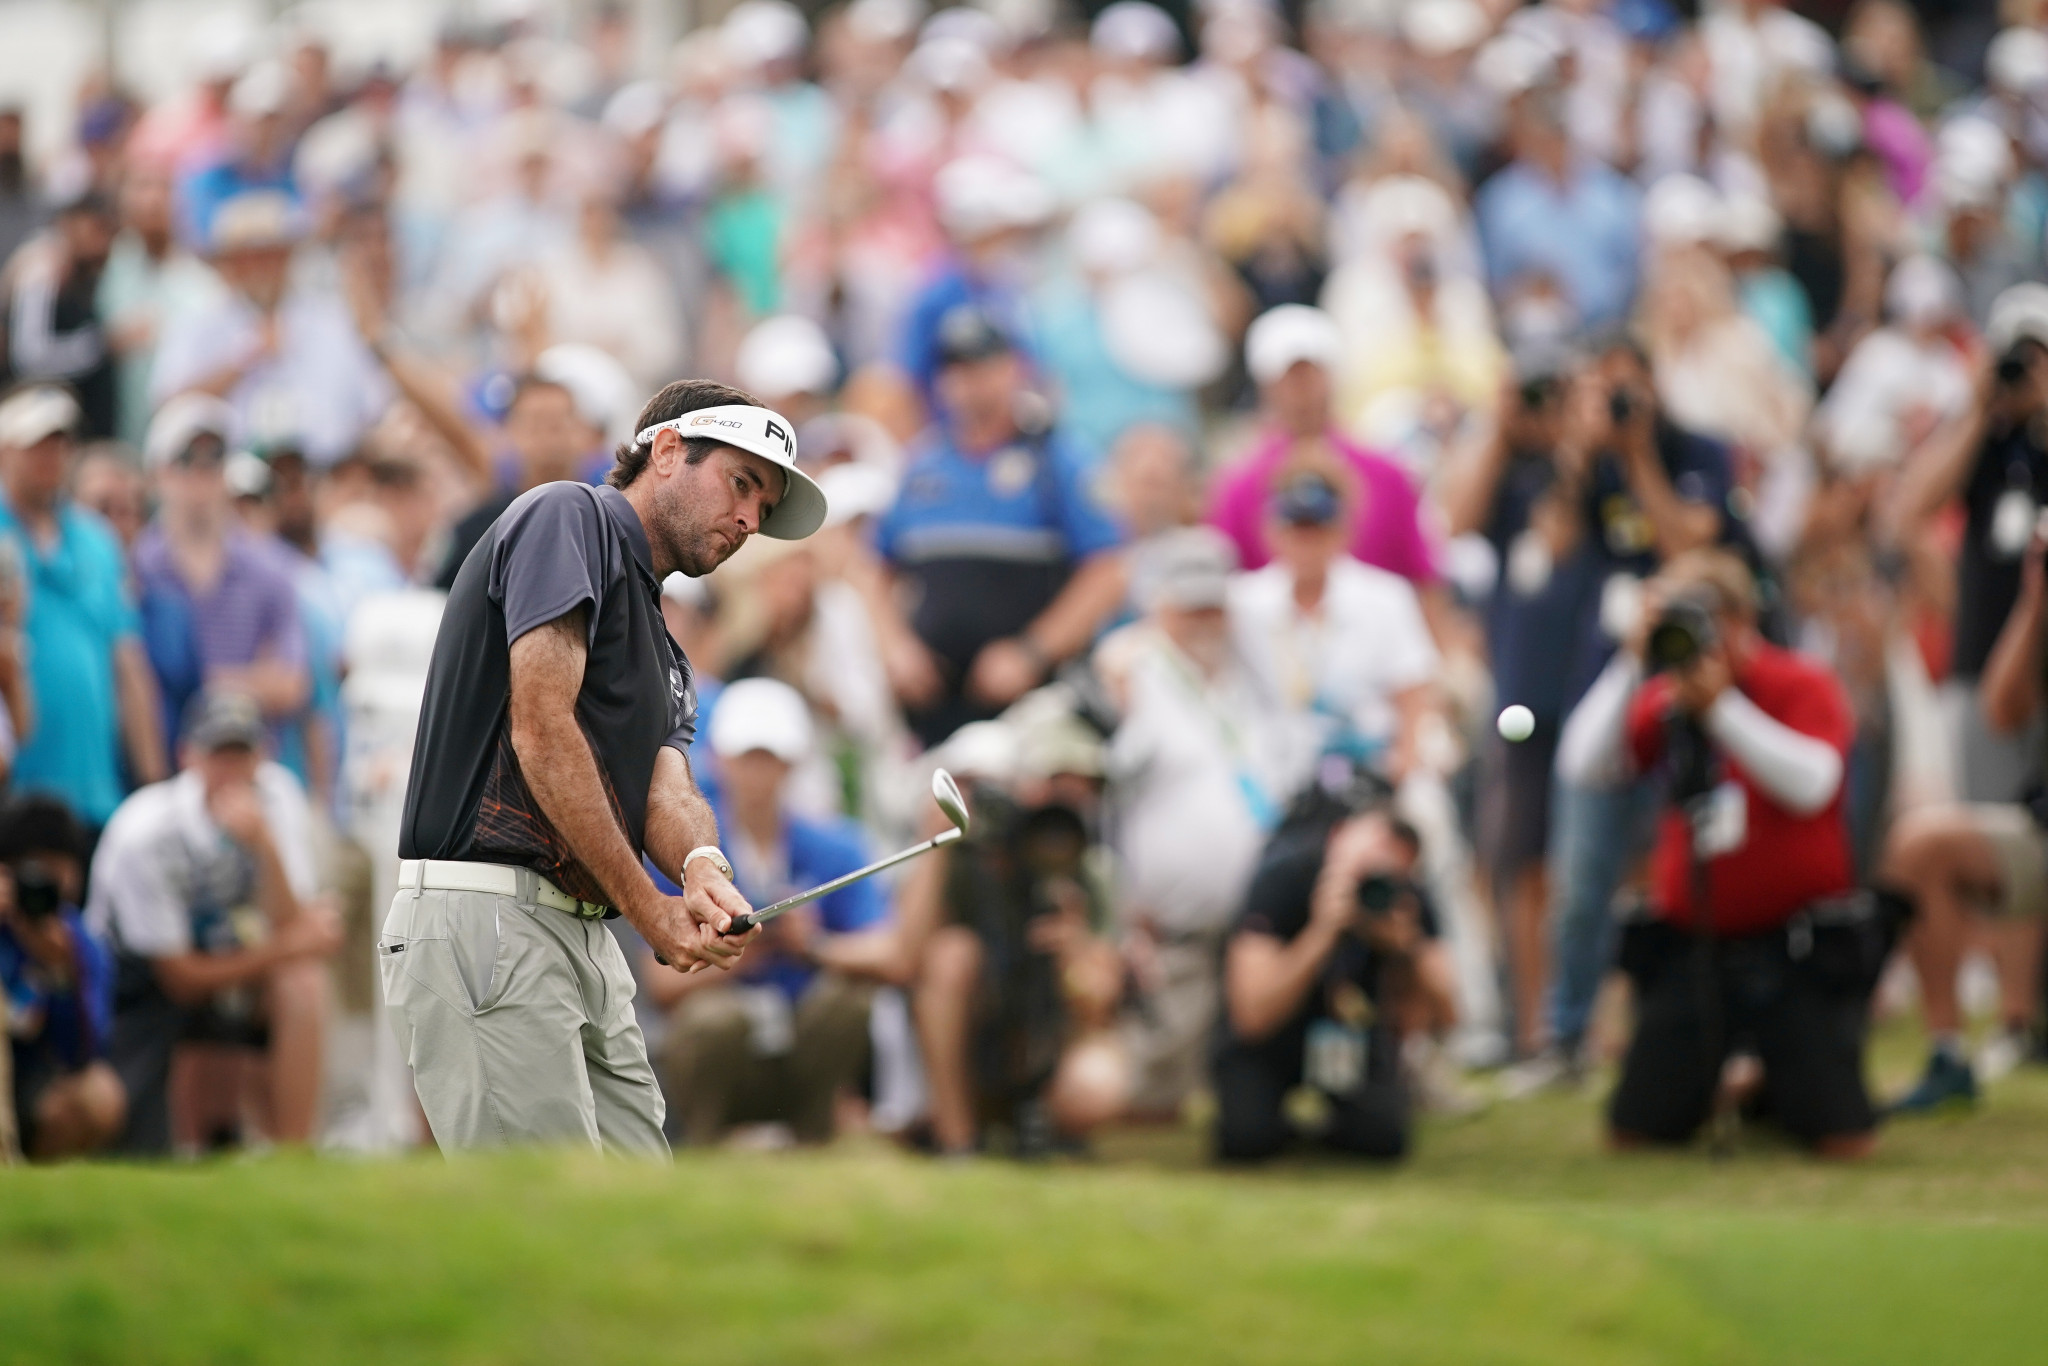 Watson secures WGC Match Play title with dominant win over Kisner